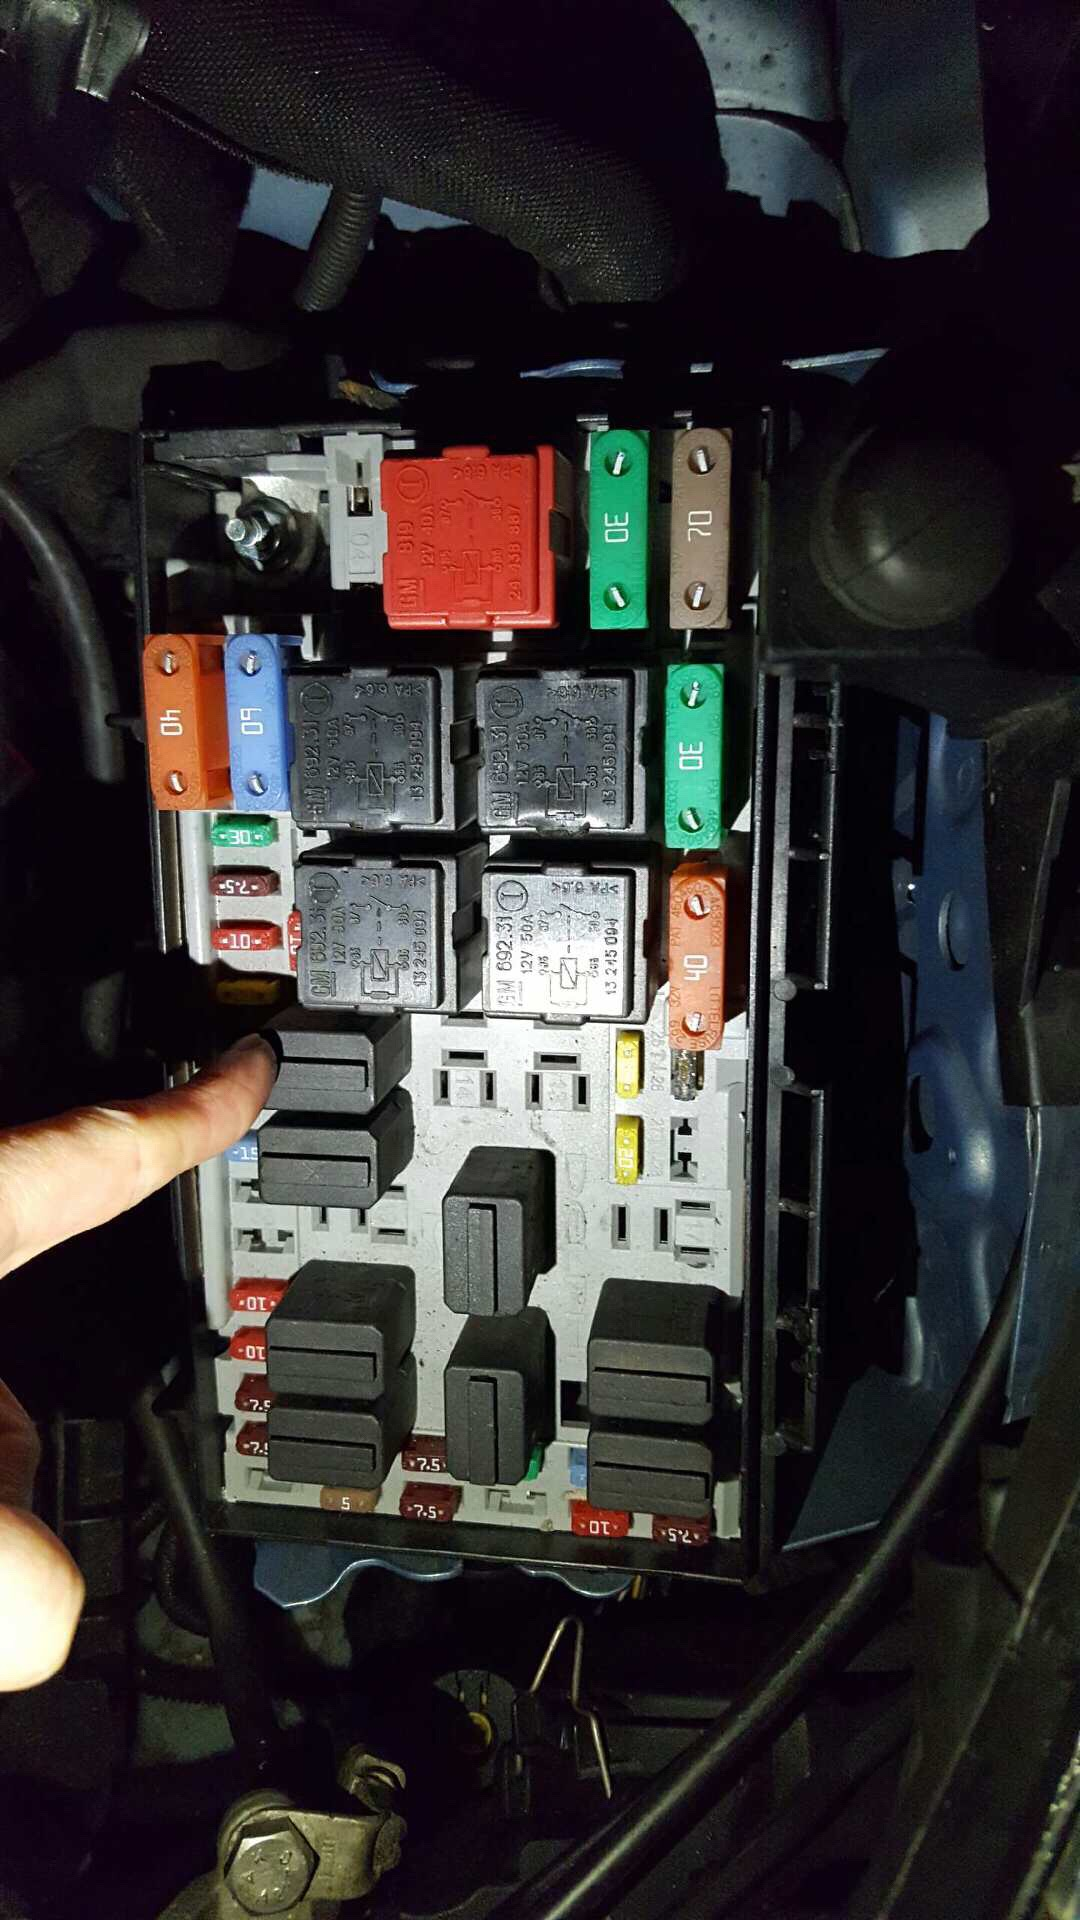 hight resolution of ecu help tracking down a battery drain issue on a 2007 vauxhall corsa fusebox